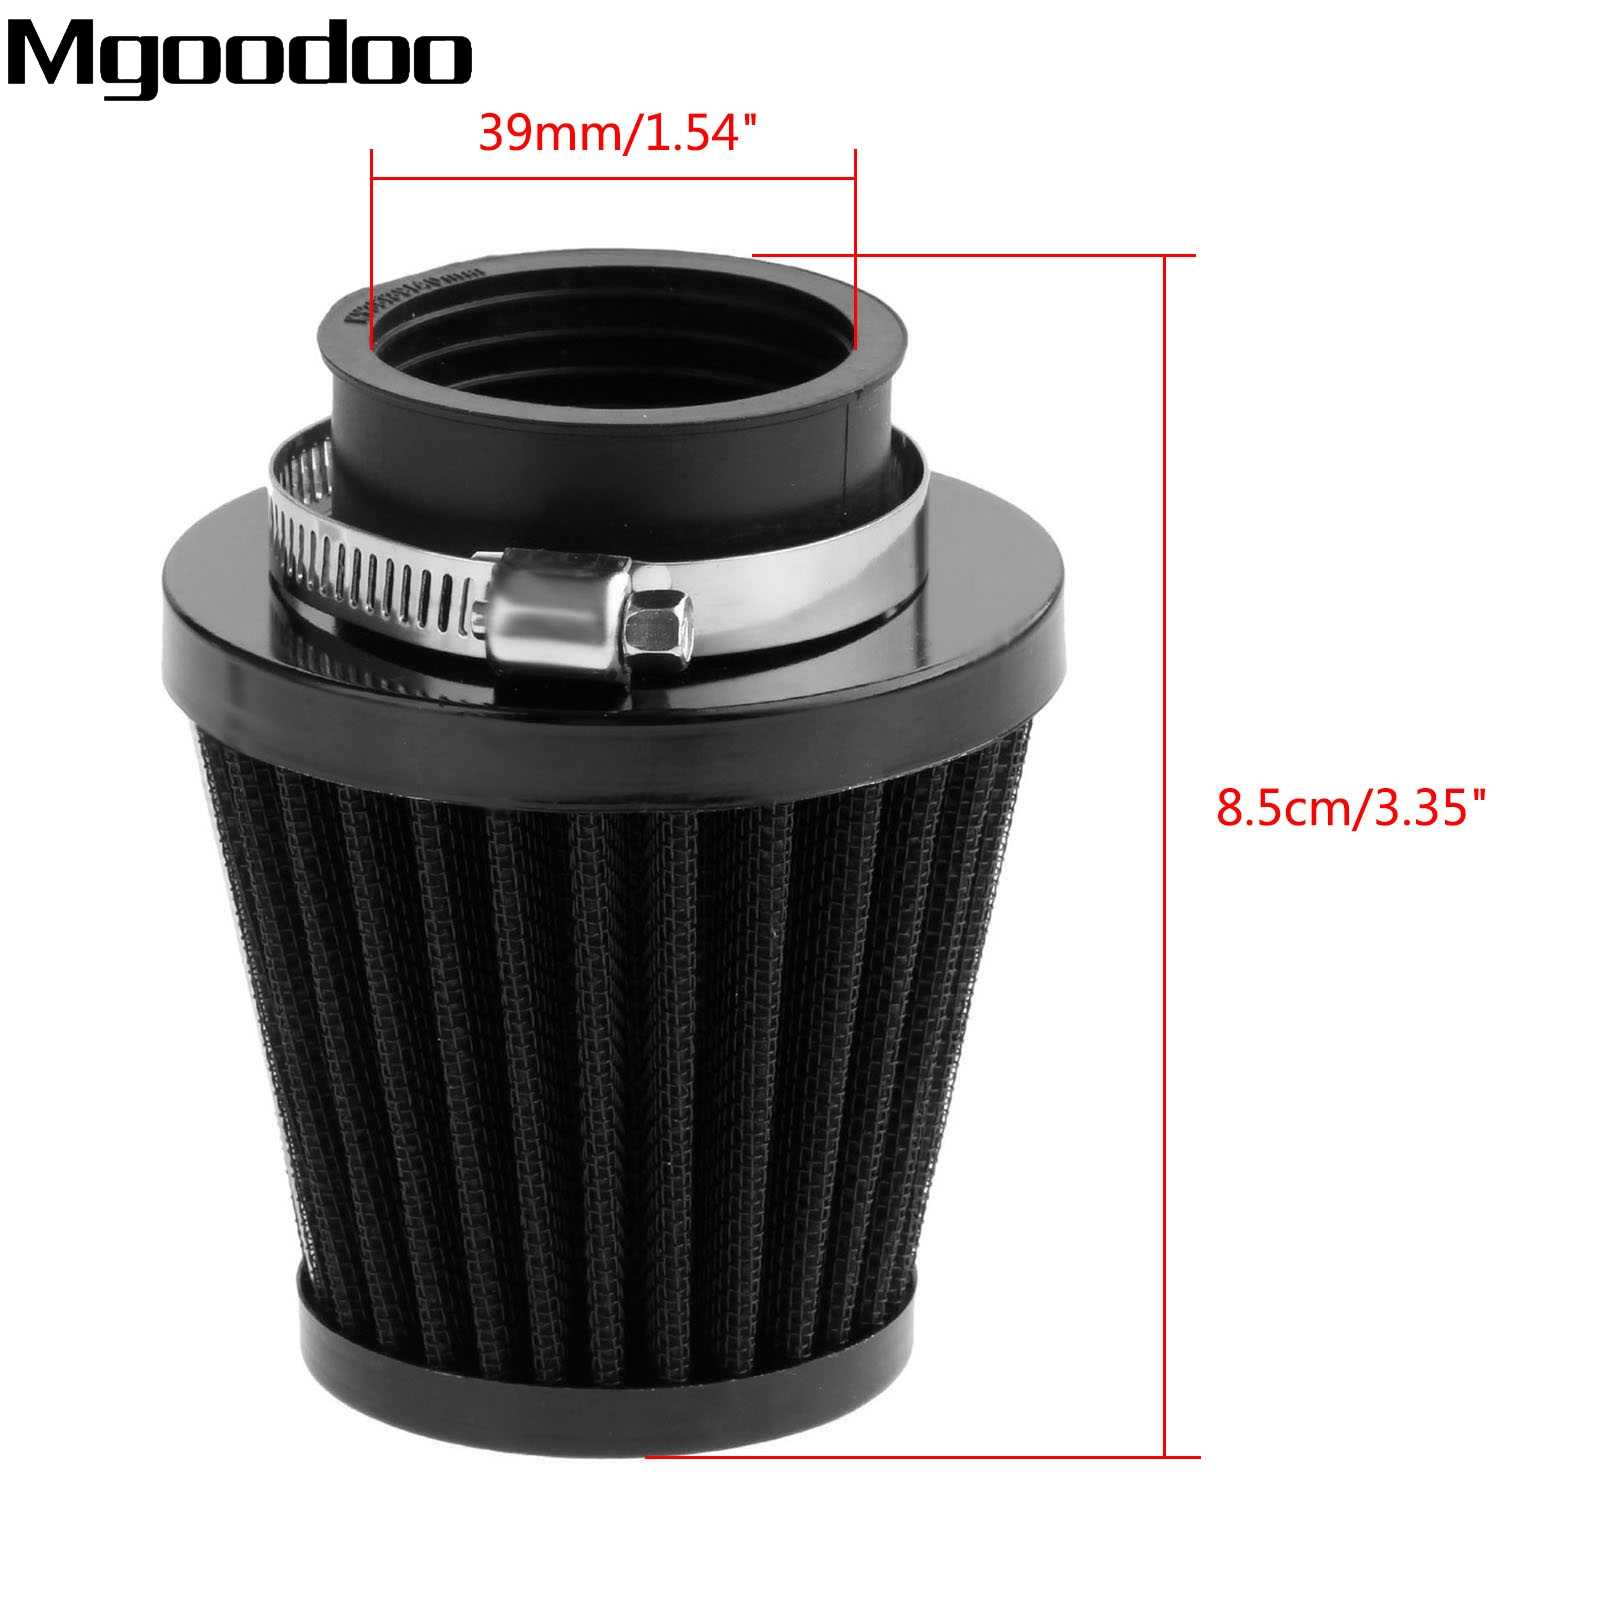 Mgoodoo 39mm Universal Motorcycle Air Filter Cleaner Clamp-on Polong ATV Dirt Pit Sepeda Scooter Motocross Udara Untuk Honda Suzuki KTM